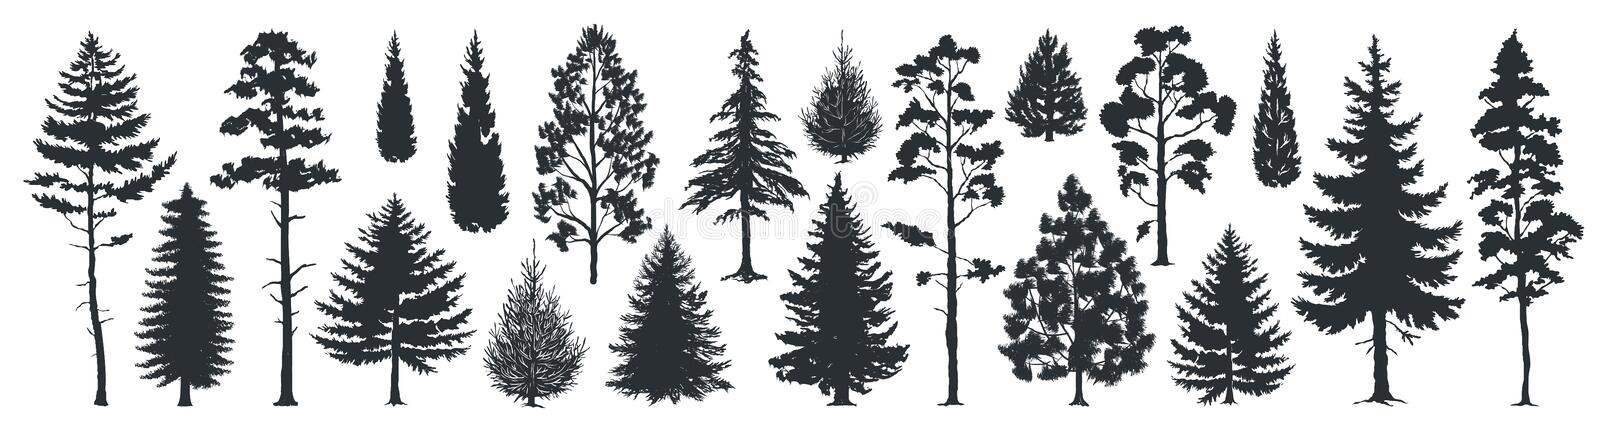 Pine tree silhouettes. Evergreen forest firs and spruces black shapes, wild nature trees templates. Vector woodland. Pine tree silhouettes. Evergreen forest firs stock illustration